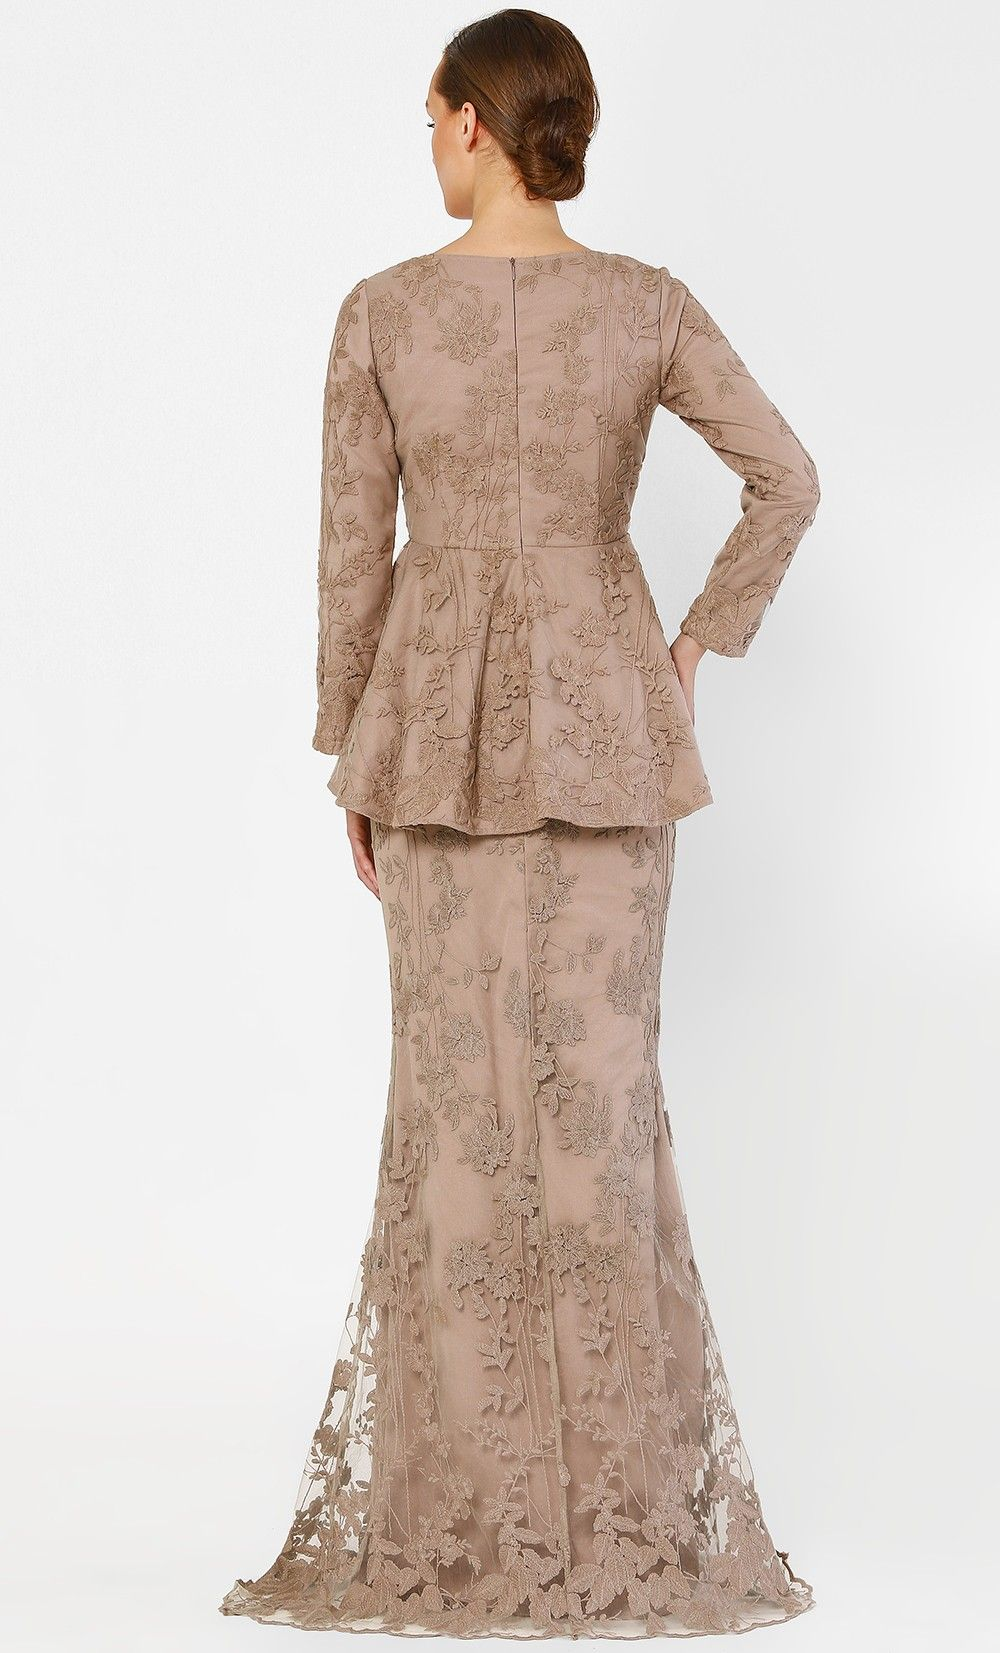 Photo of The Peplum Kurung with Full Dahlia Lace in Sand